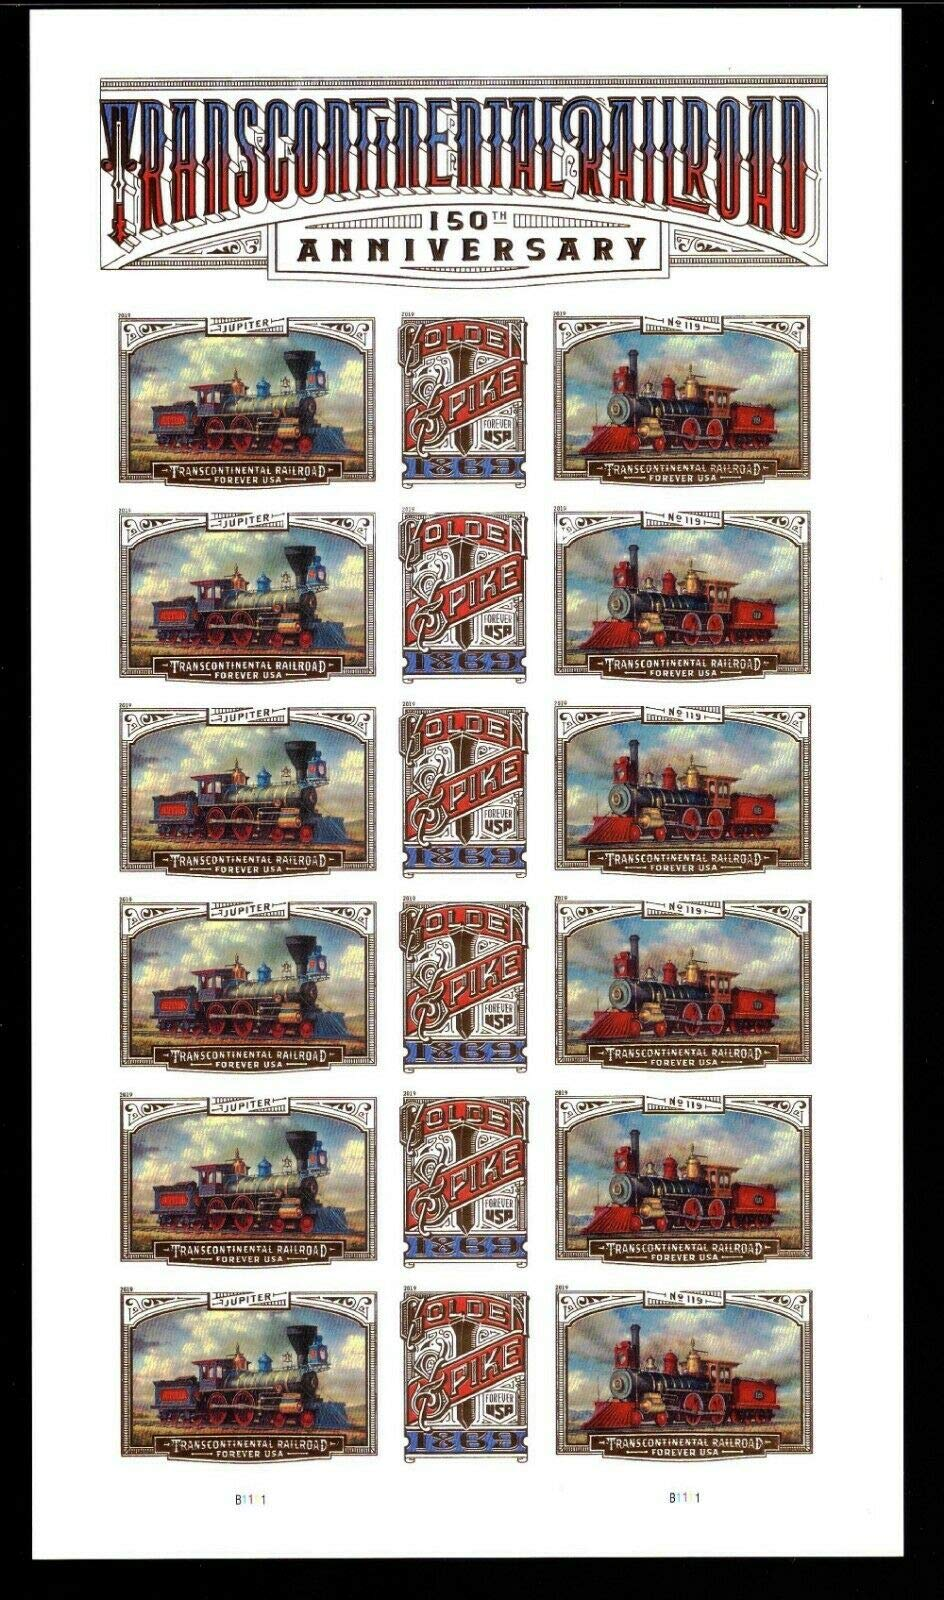 USPS 2019 150th Anniversary Transcontinental Railroad Sheet of 18 Forever Stamps Scott 5380